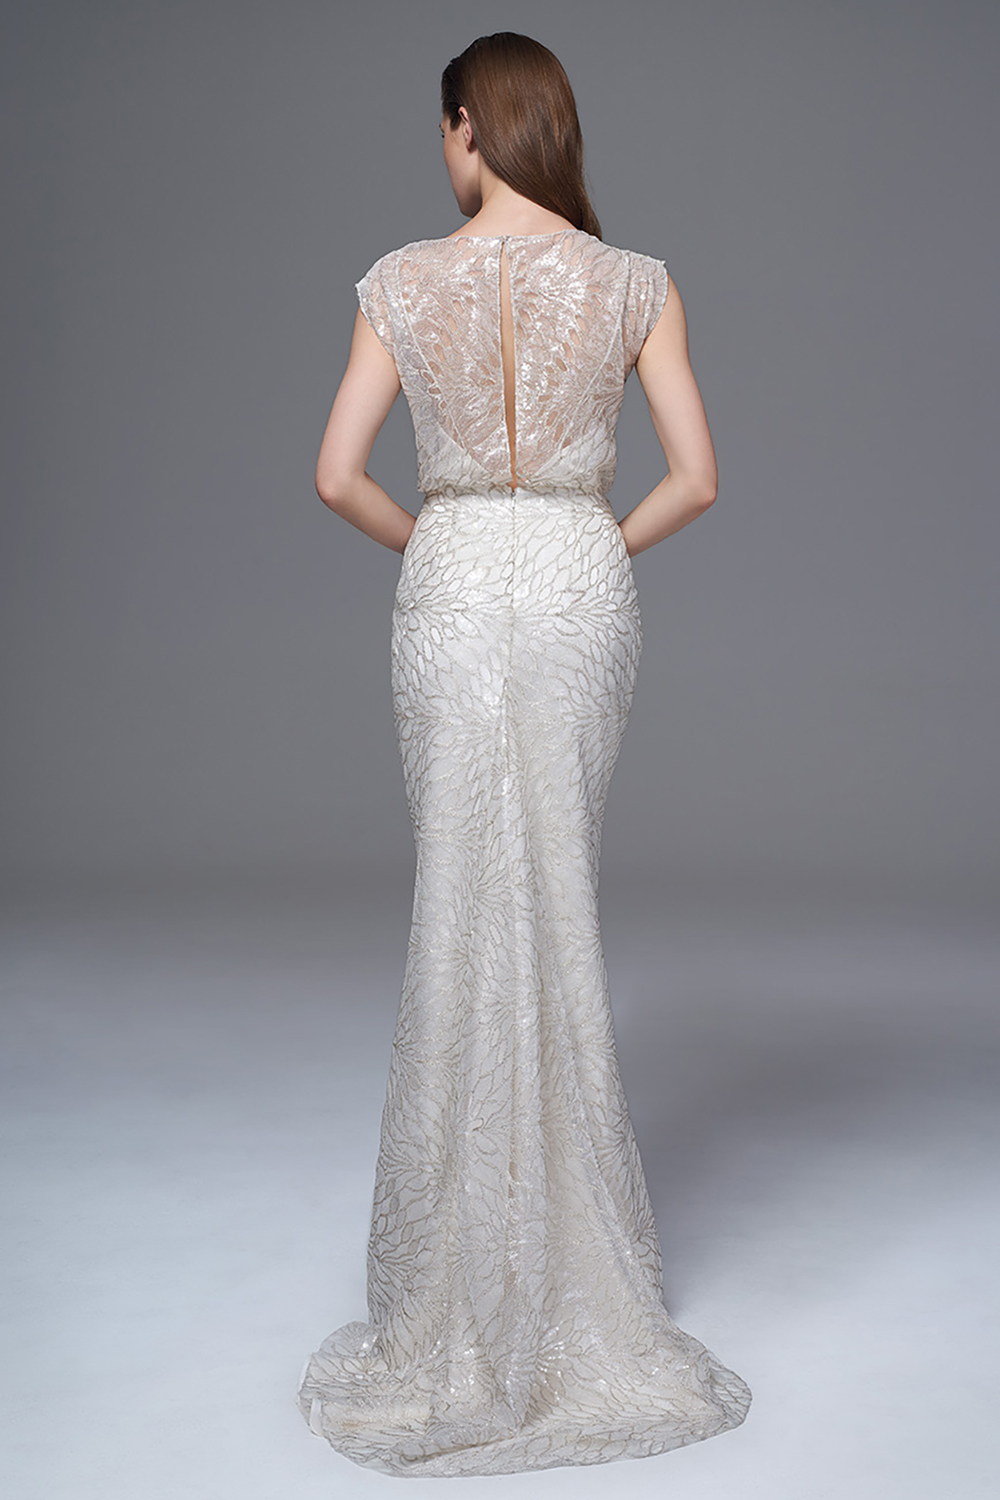 THE CHLOE SILVER SEQUINNED DRESS WITH SLASH NECK AND GODET TRAIN. BRIDAL WEDDING DRESS BY HALFPENNY LONDON